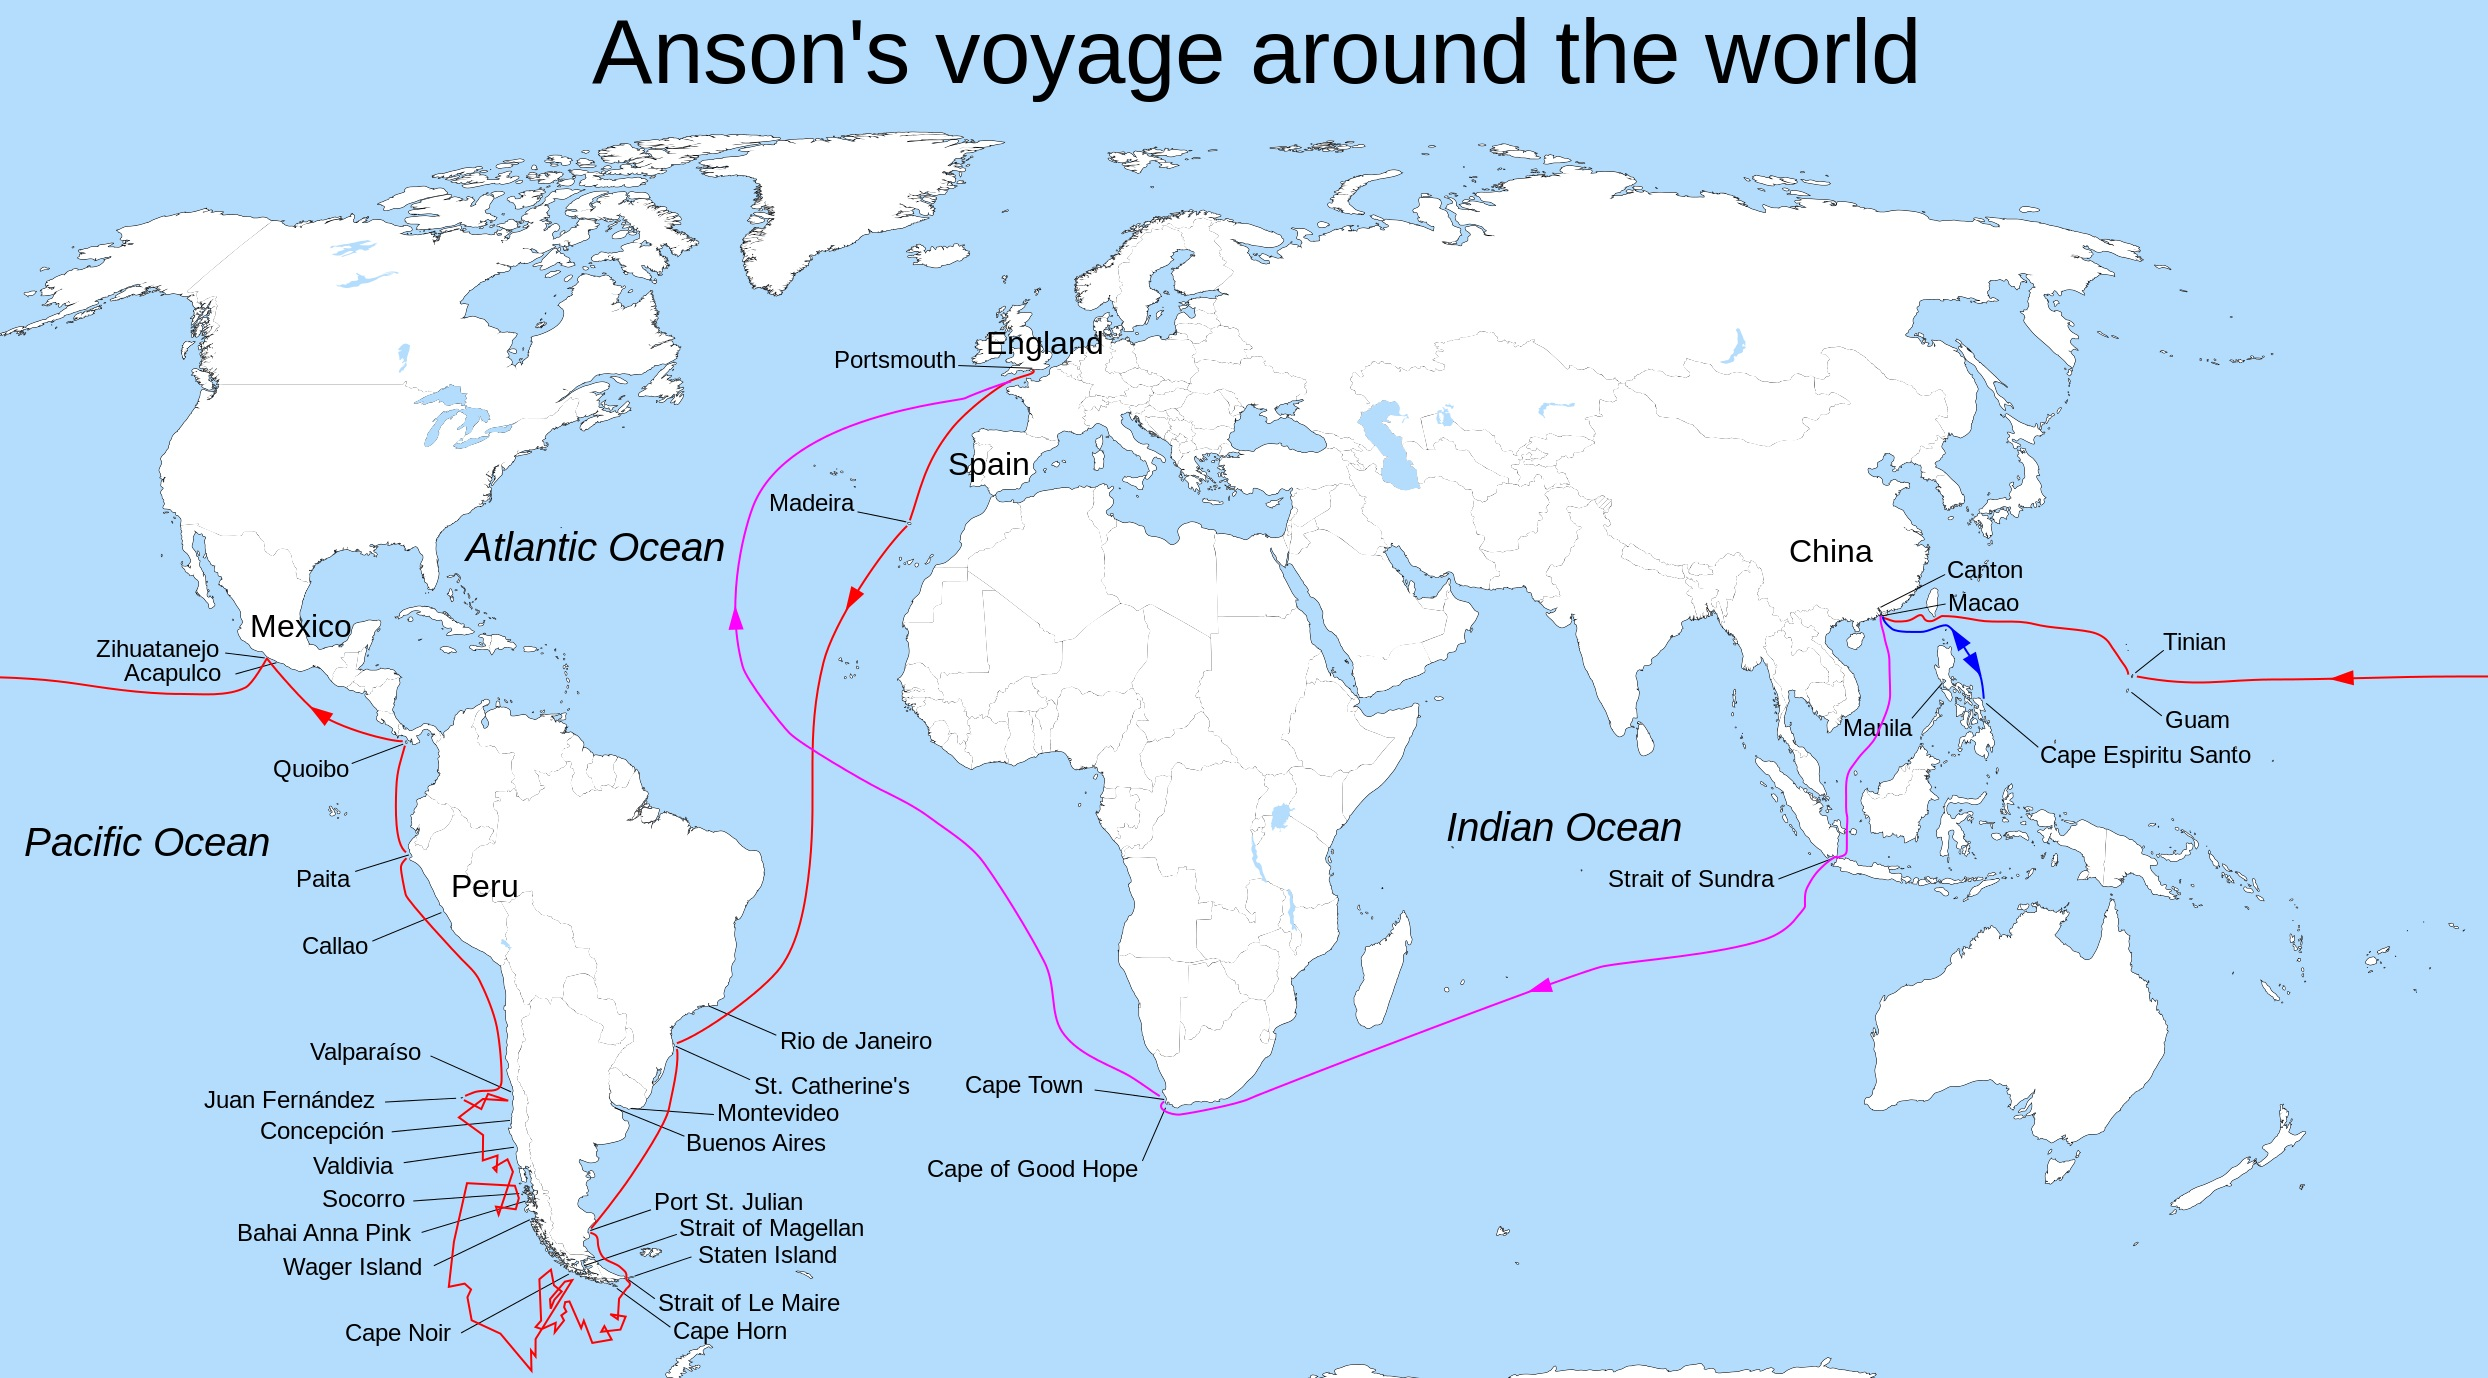 Ansons Voyage around the world map